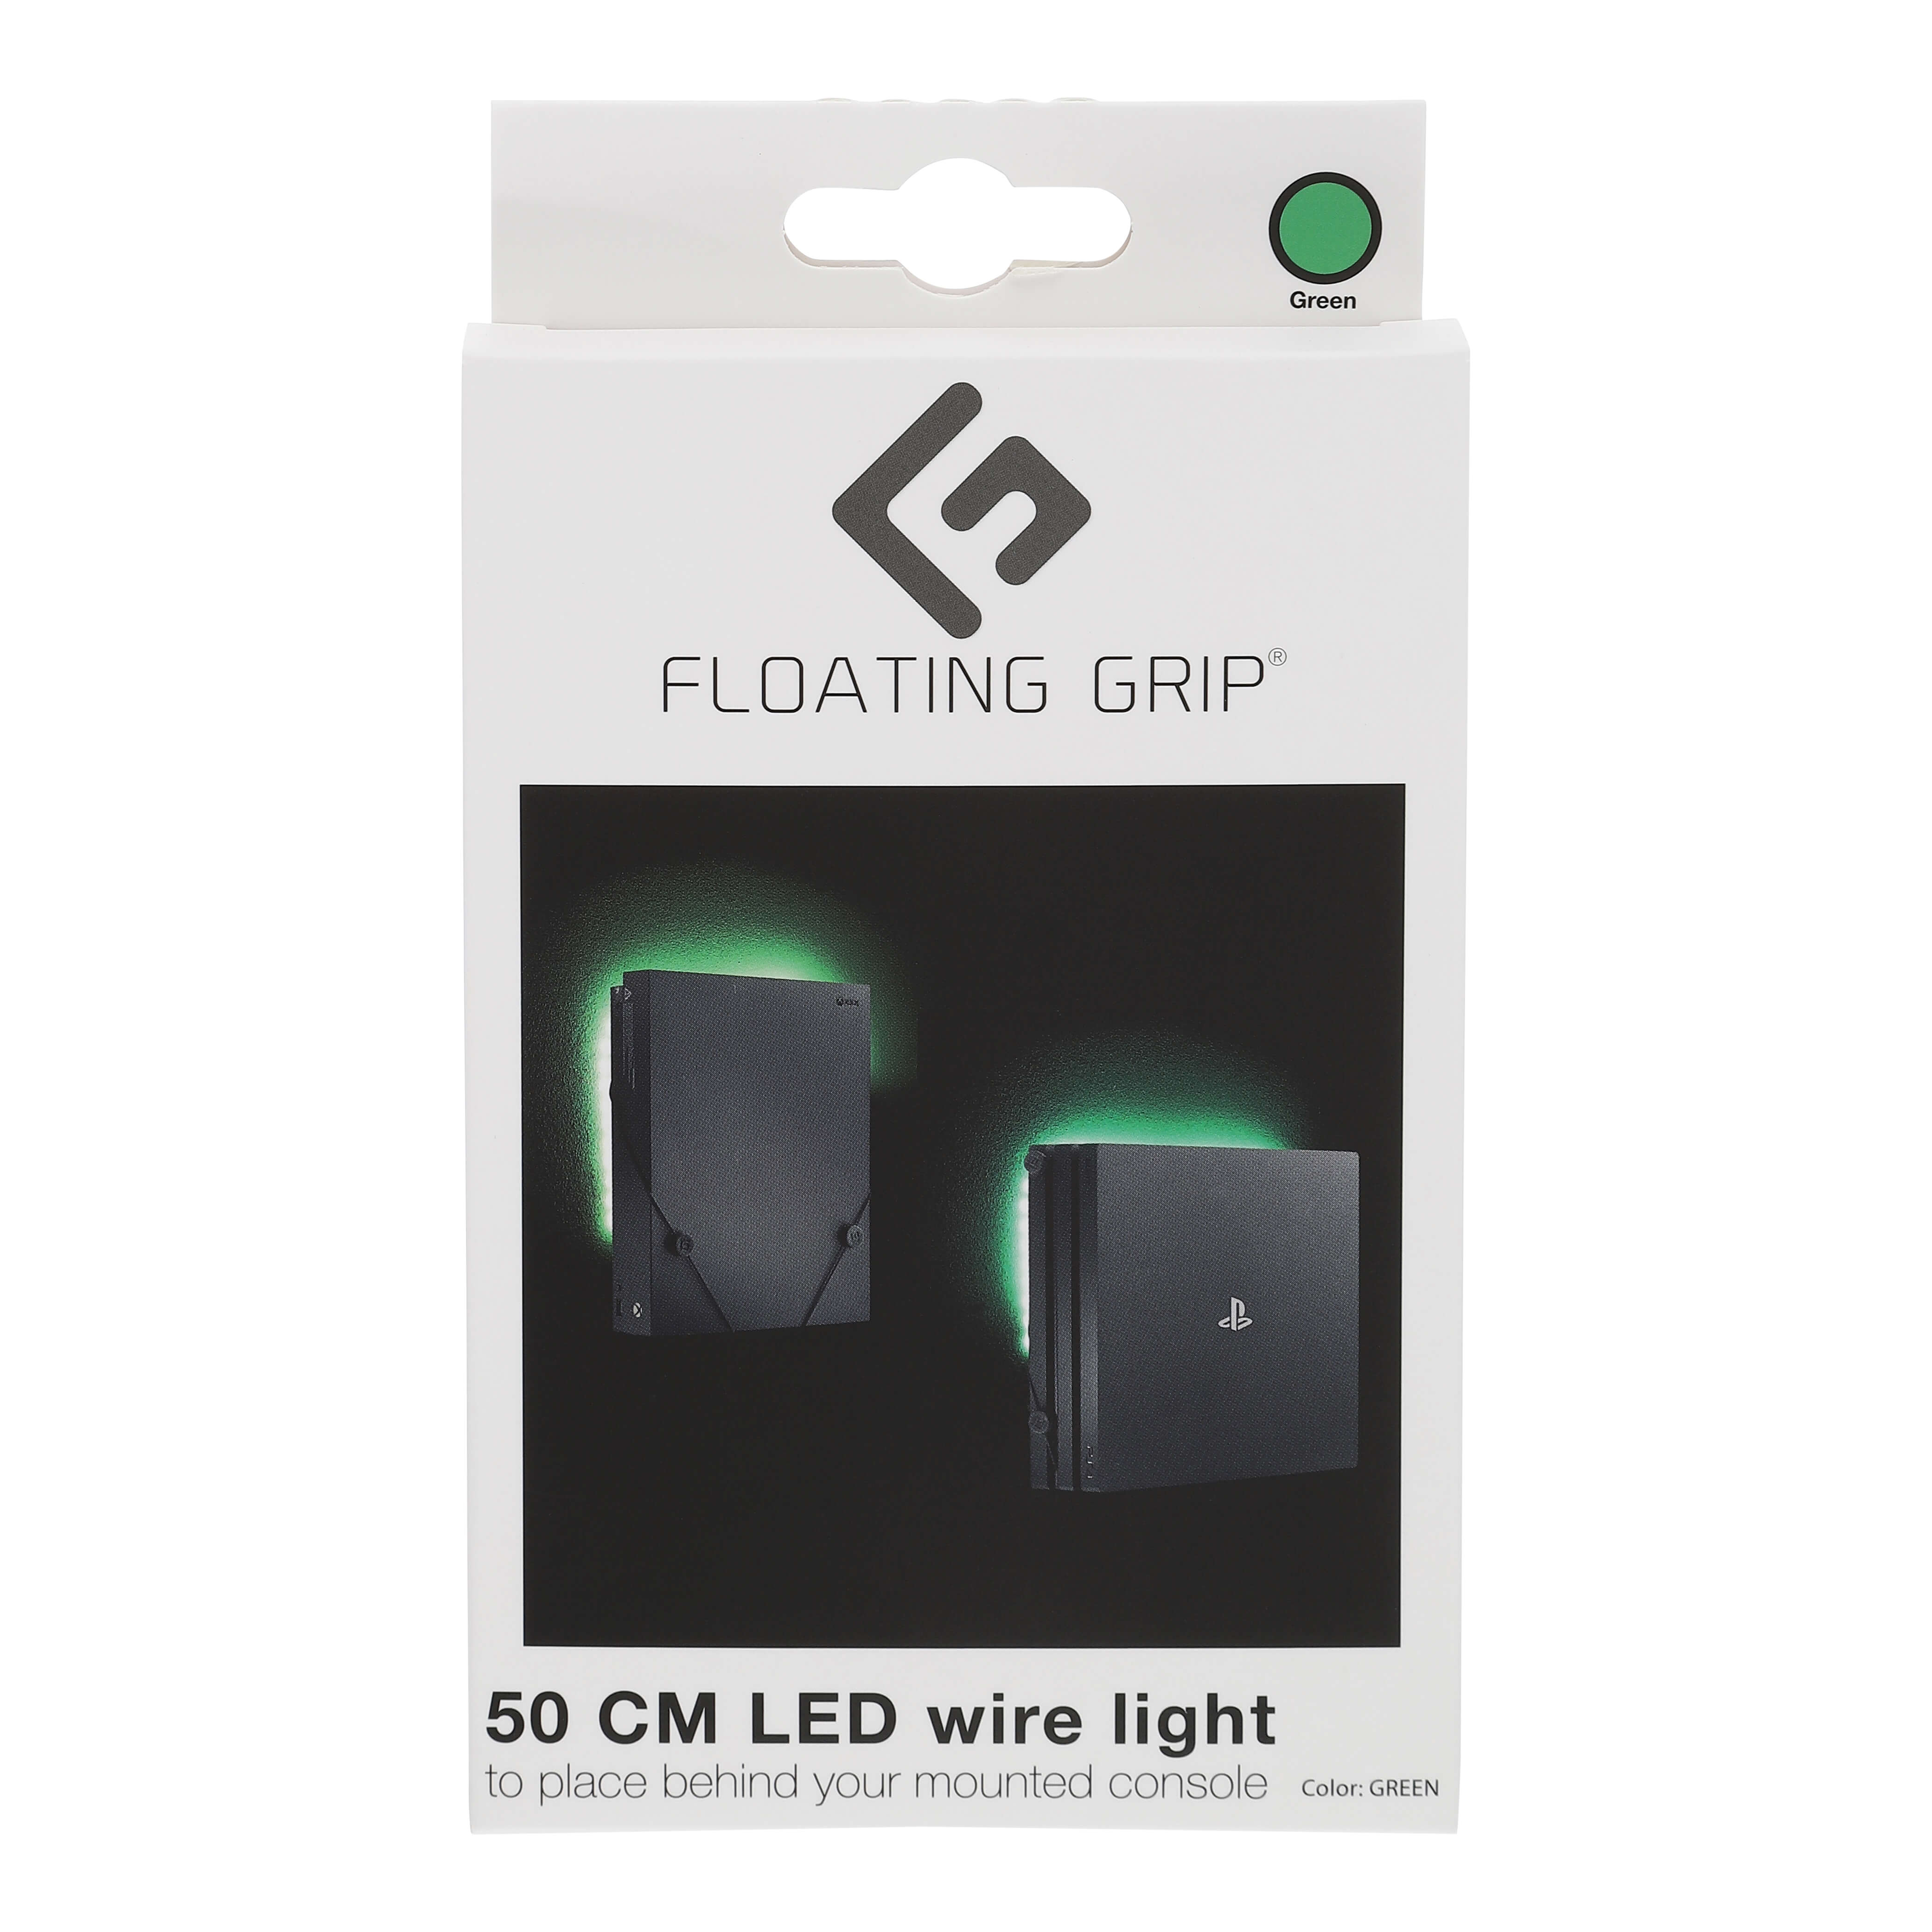 Floating Grip Led Wire Light with USB Green